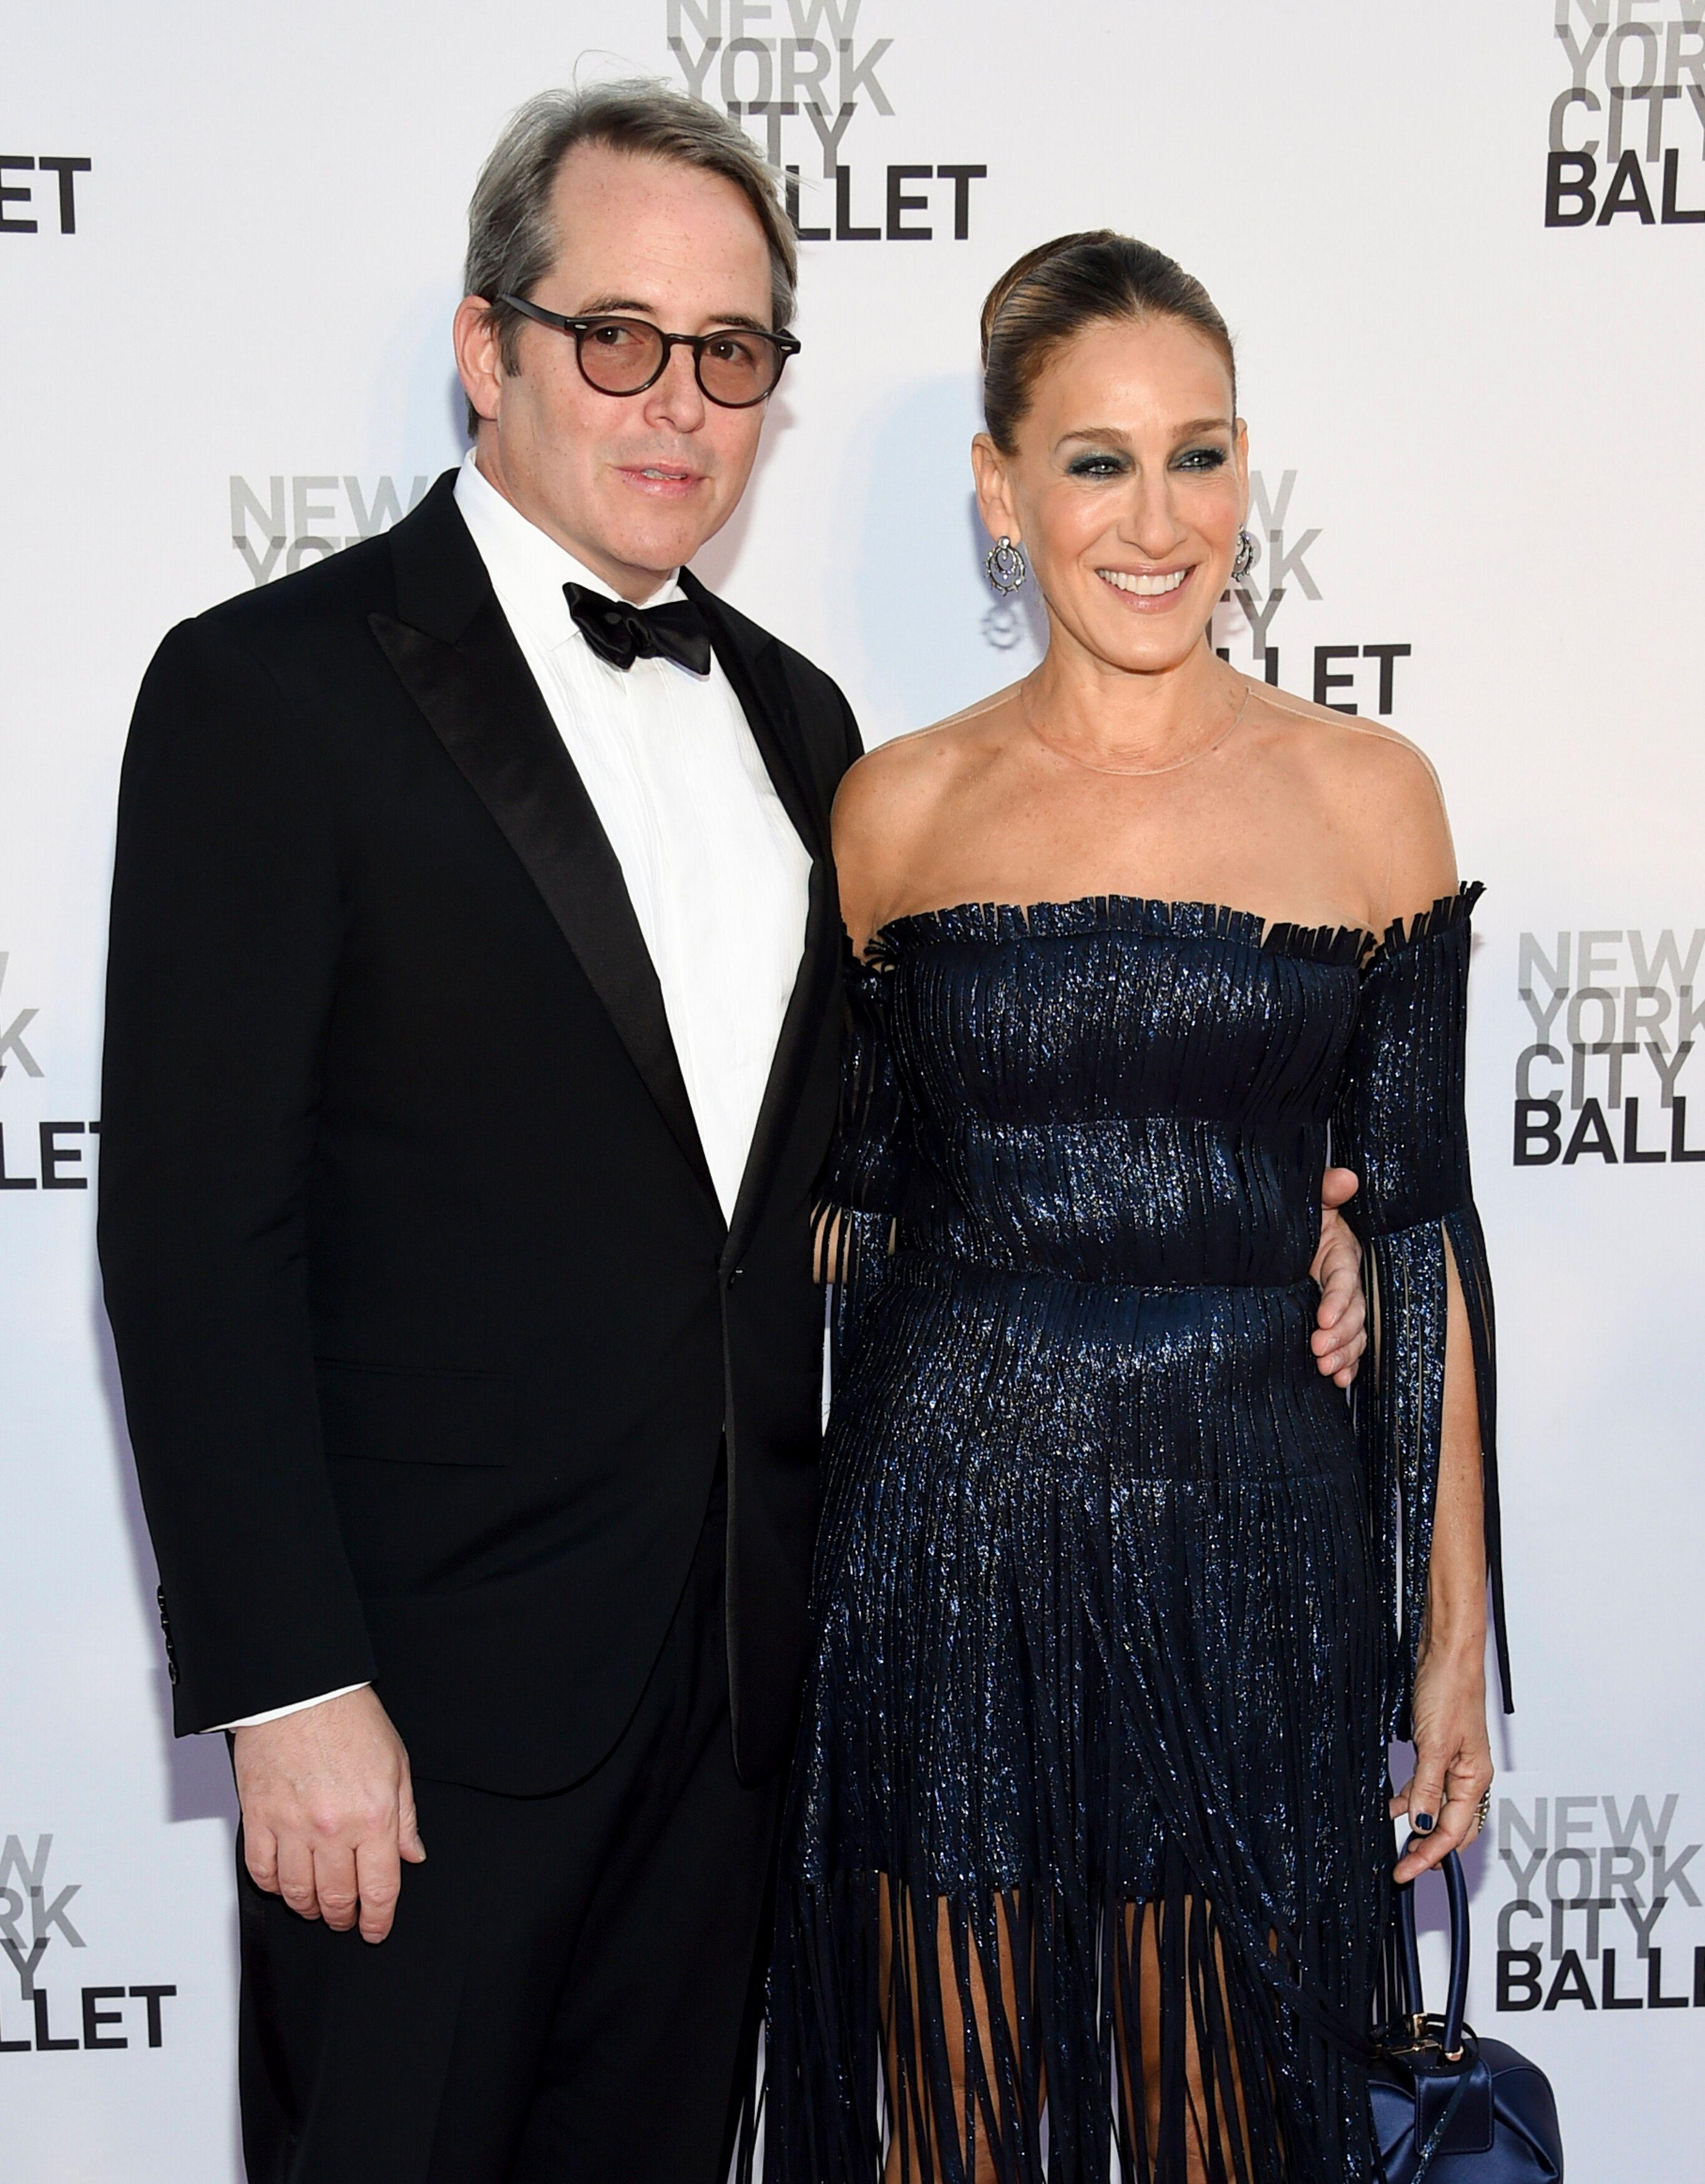 Sarah Jessica Parker Lashes Out At National Enquirer Rumors